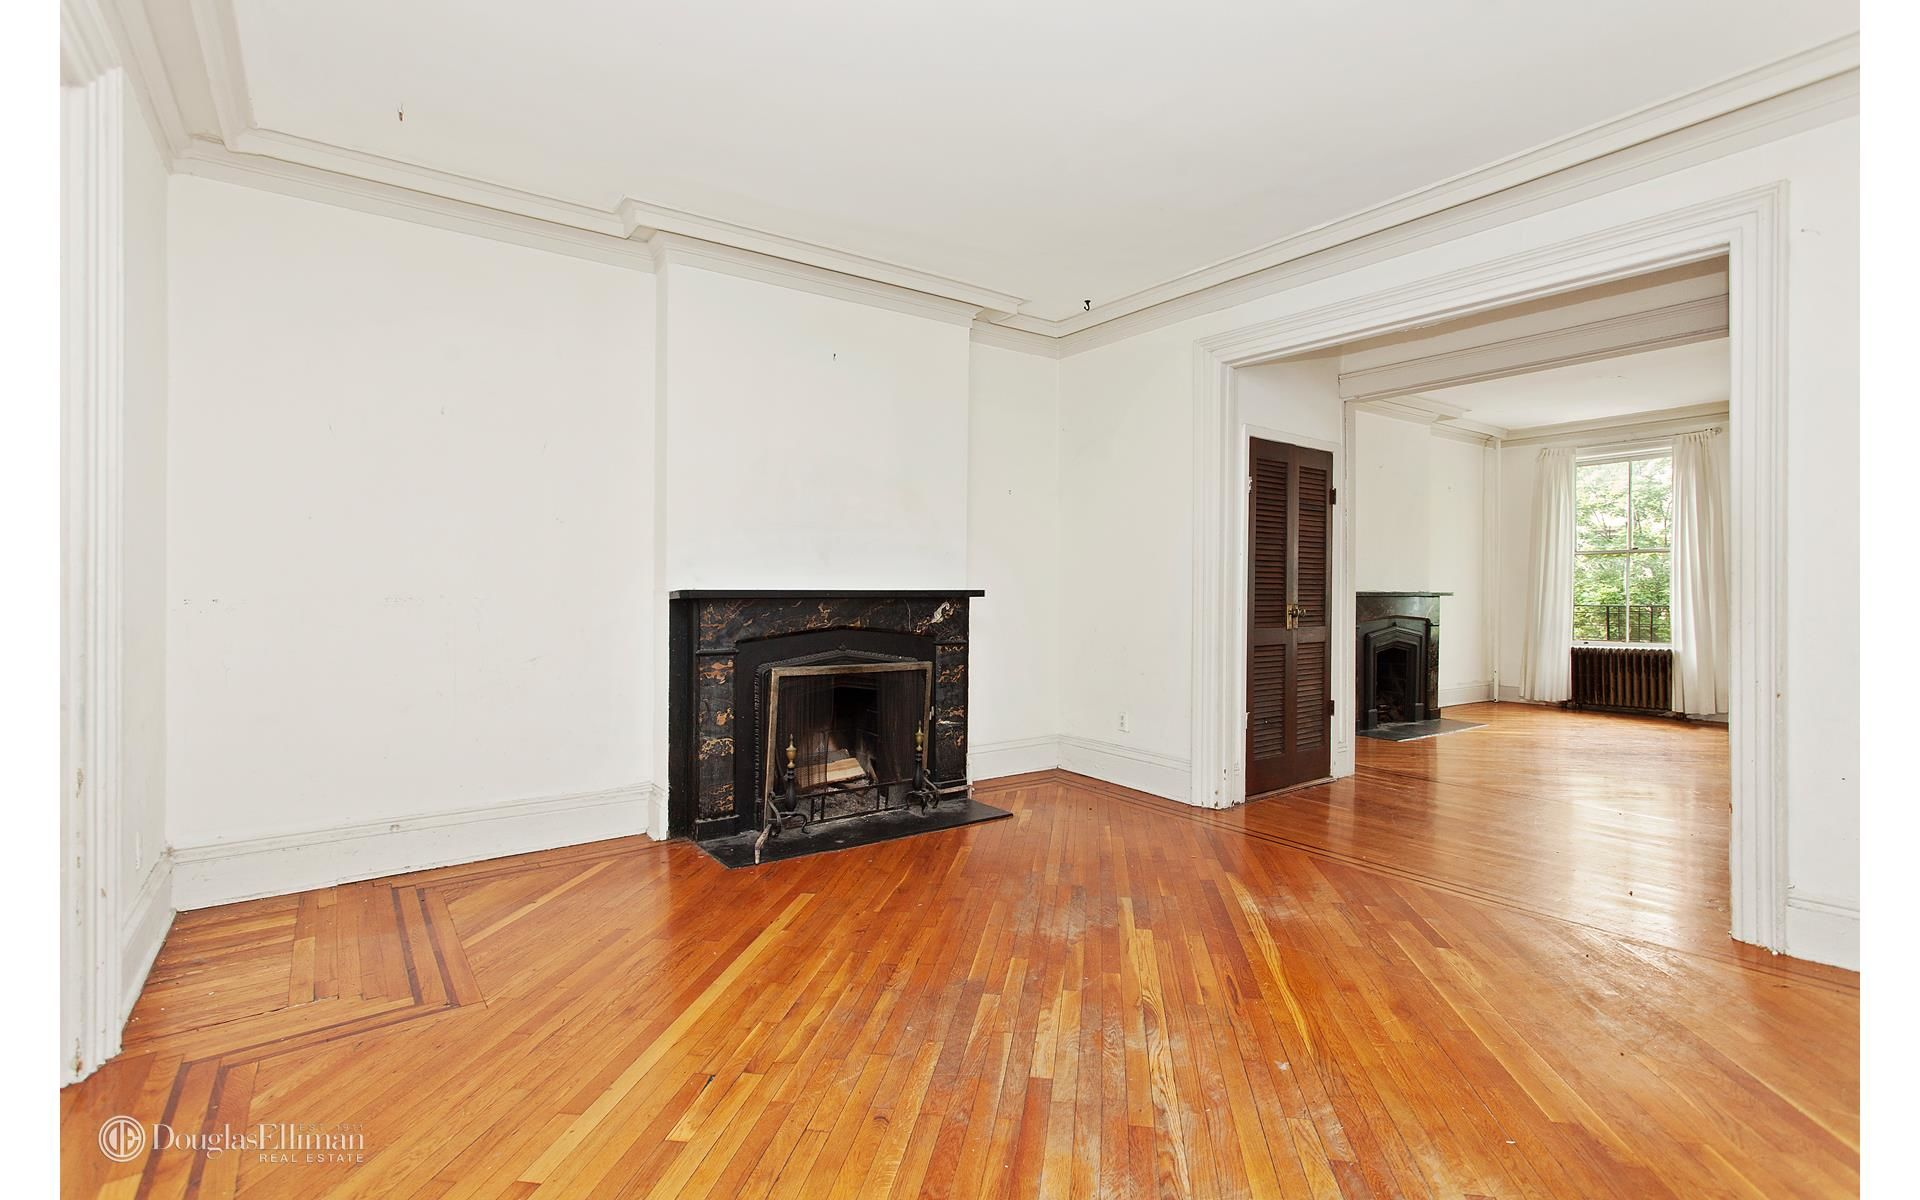 187 Amity St Photo 9 - ELLIMAN-3829654